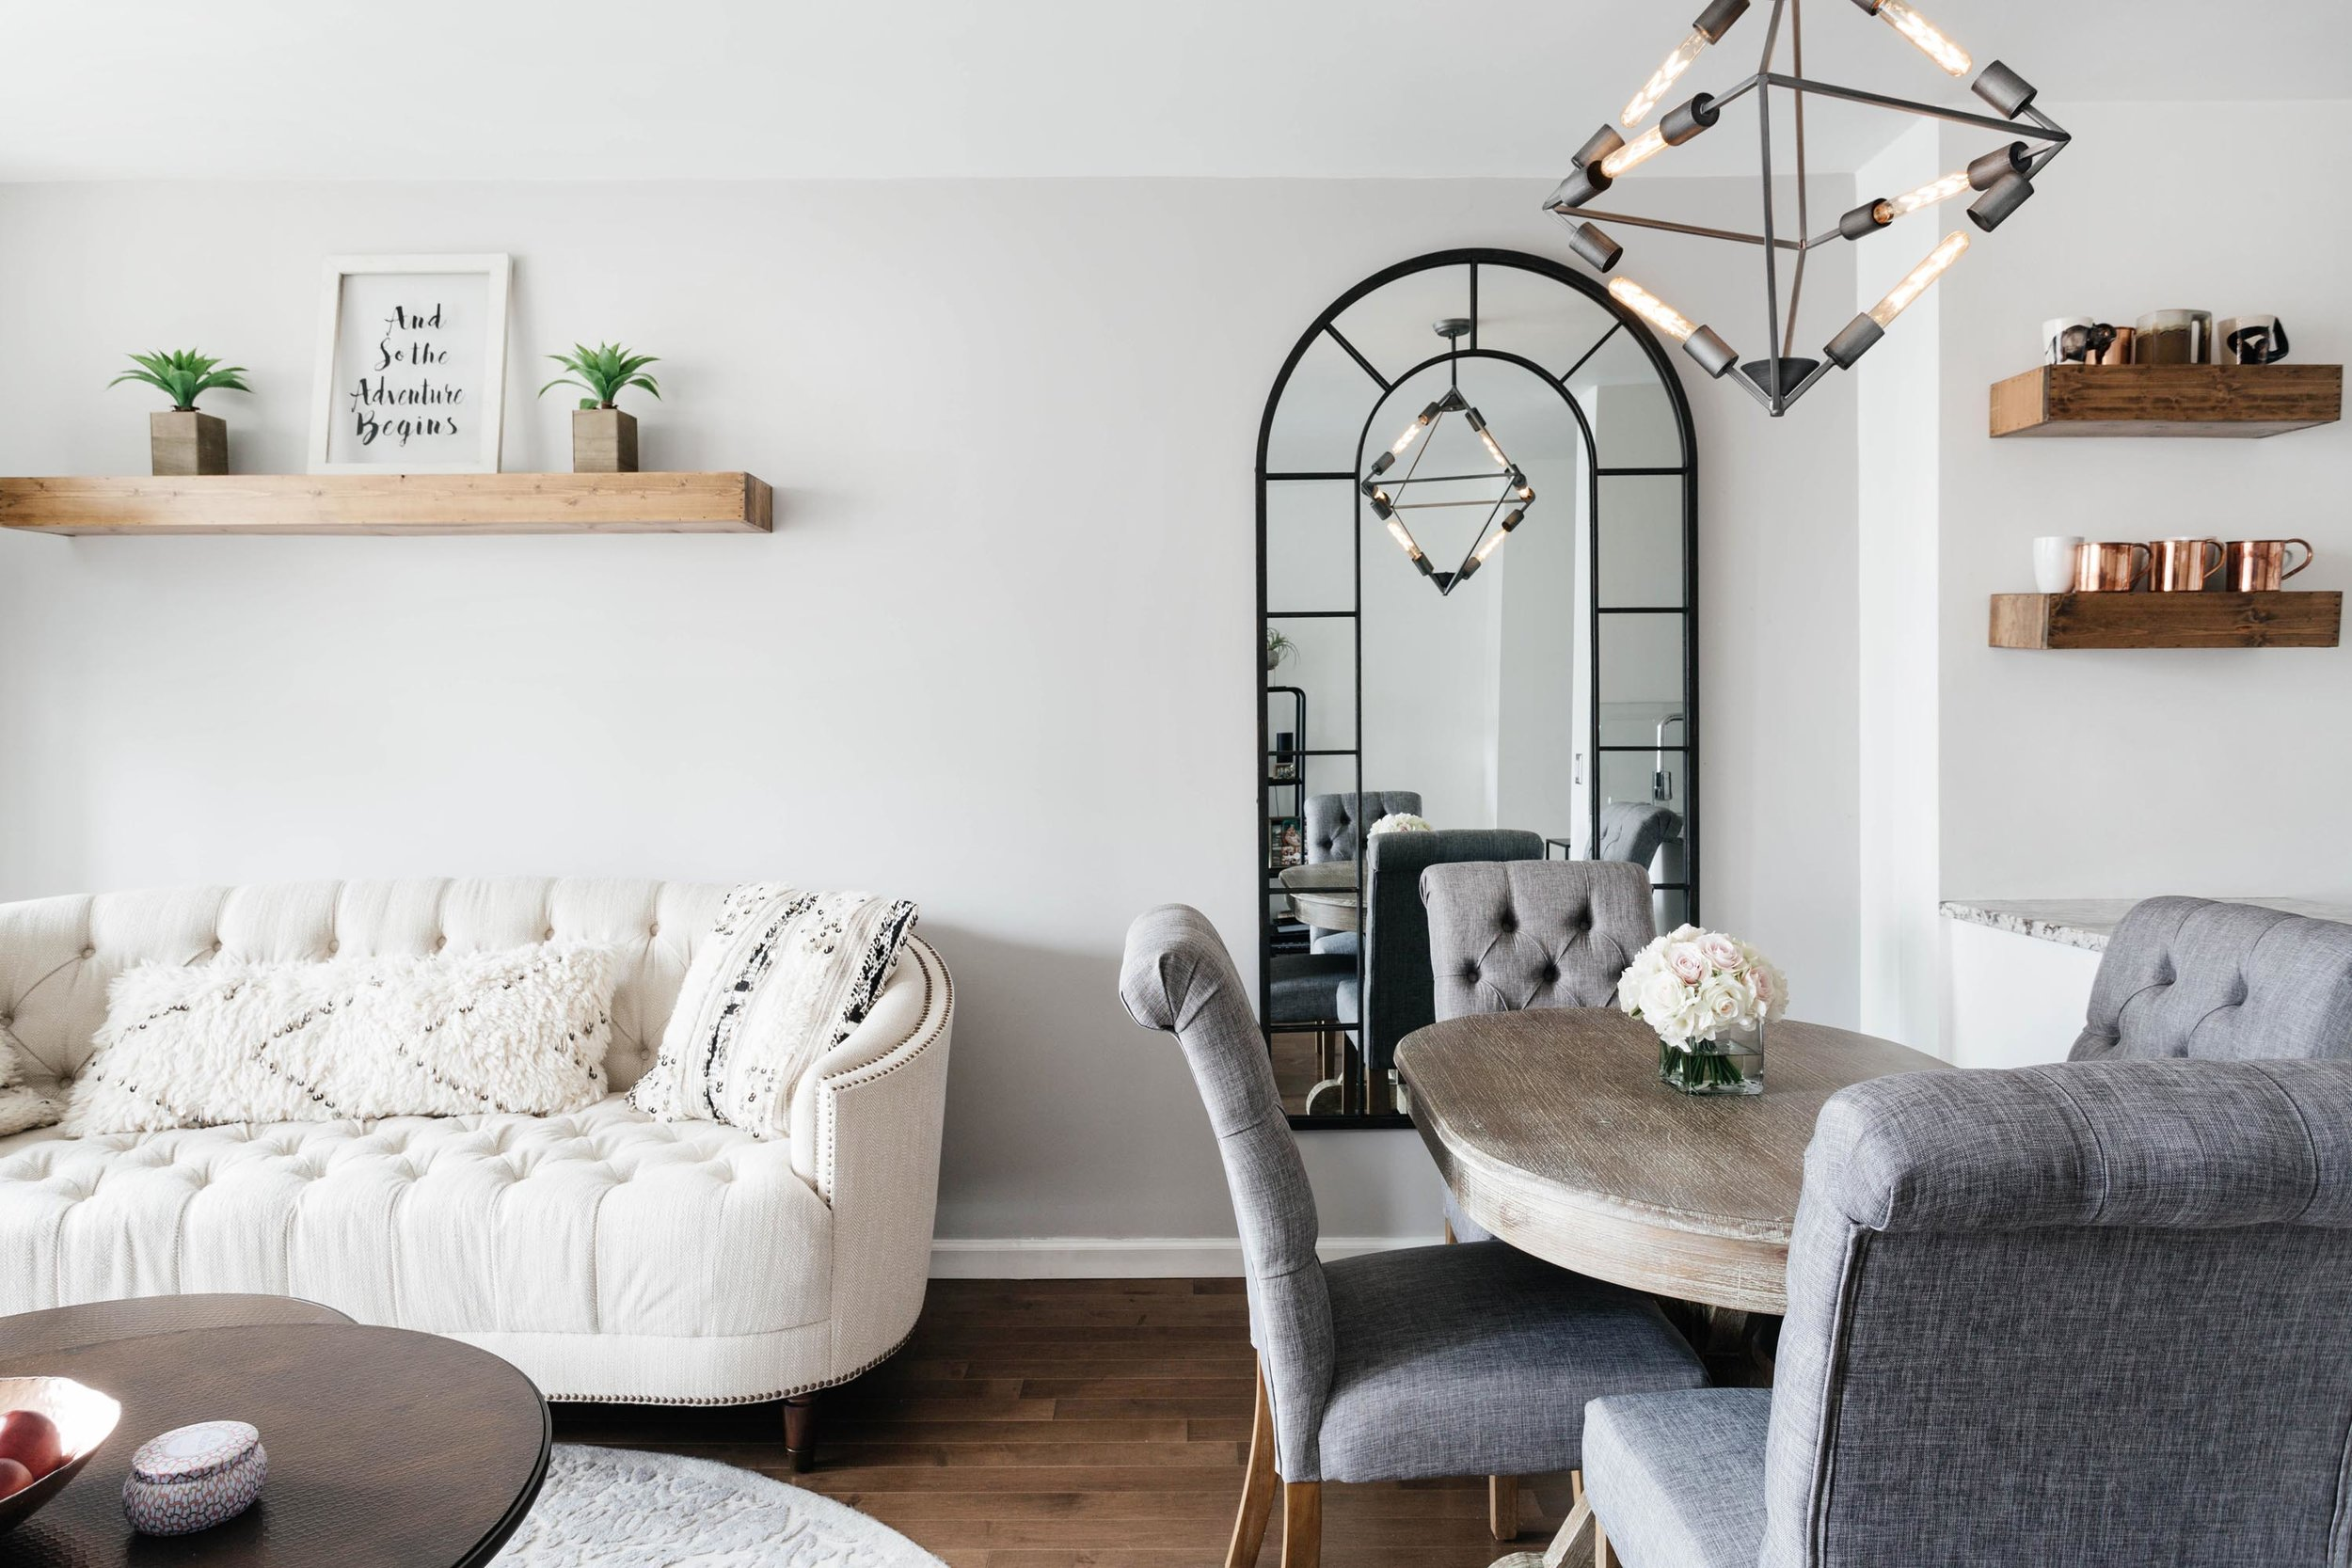 Living room space with breakfast nook area